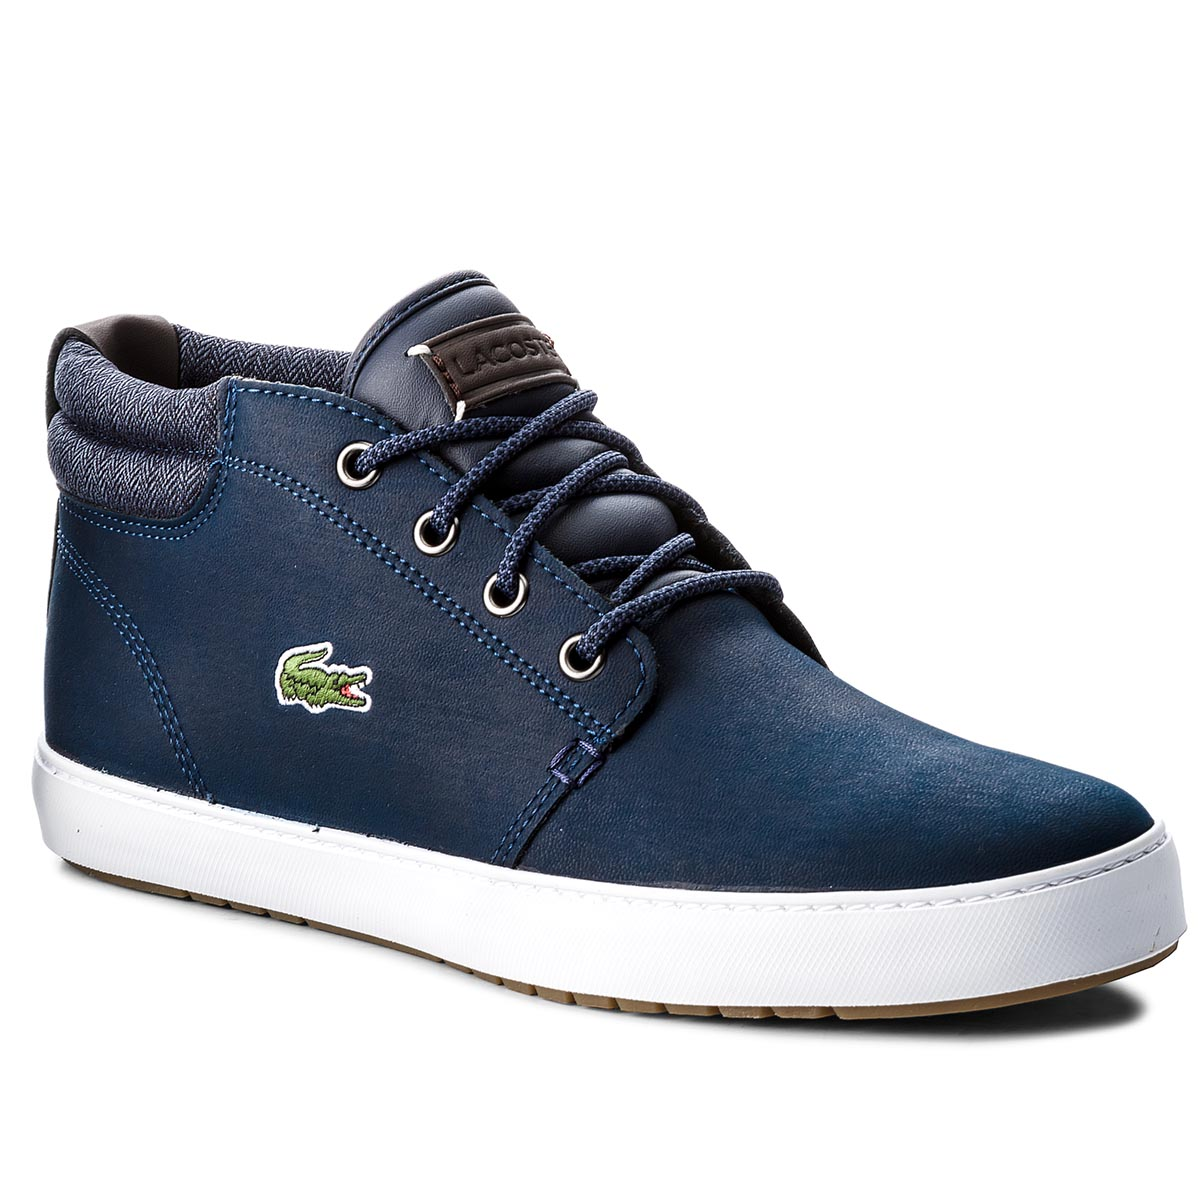 Sneakersy LACOSTE - Ampthill Terra 318 1 Cam 7-36CAM0005ND1 Nvy/Dk Blu